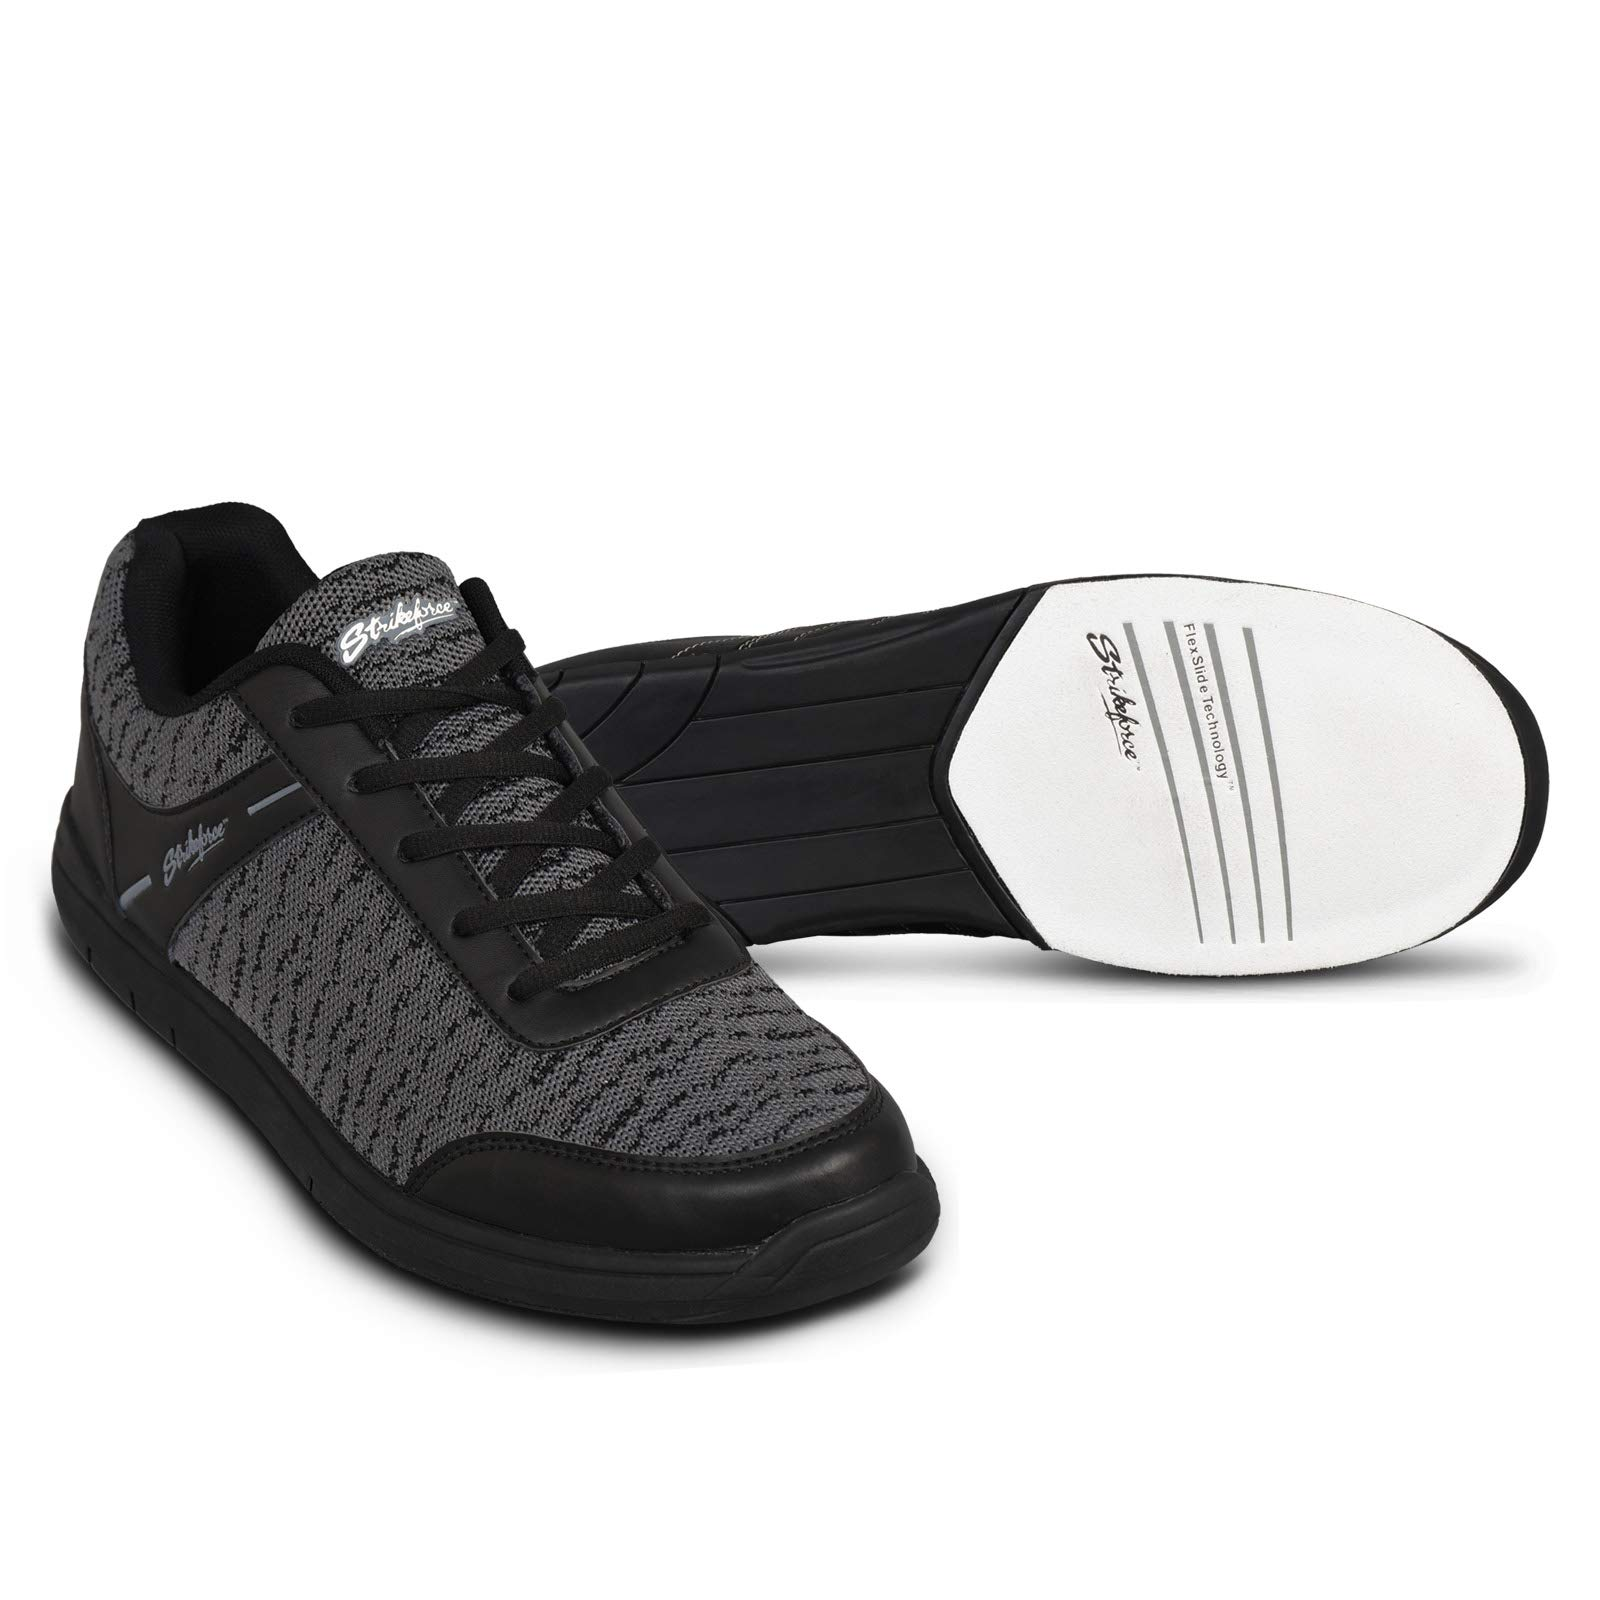 KR Strikeforce Men's Flyer Mesh Bowling Shoes, Black/Steel, Size 10 by KR Strikeforce